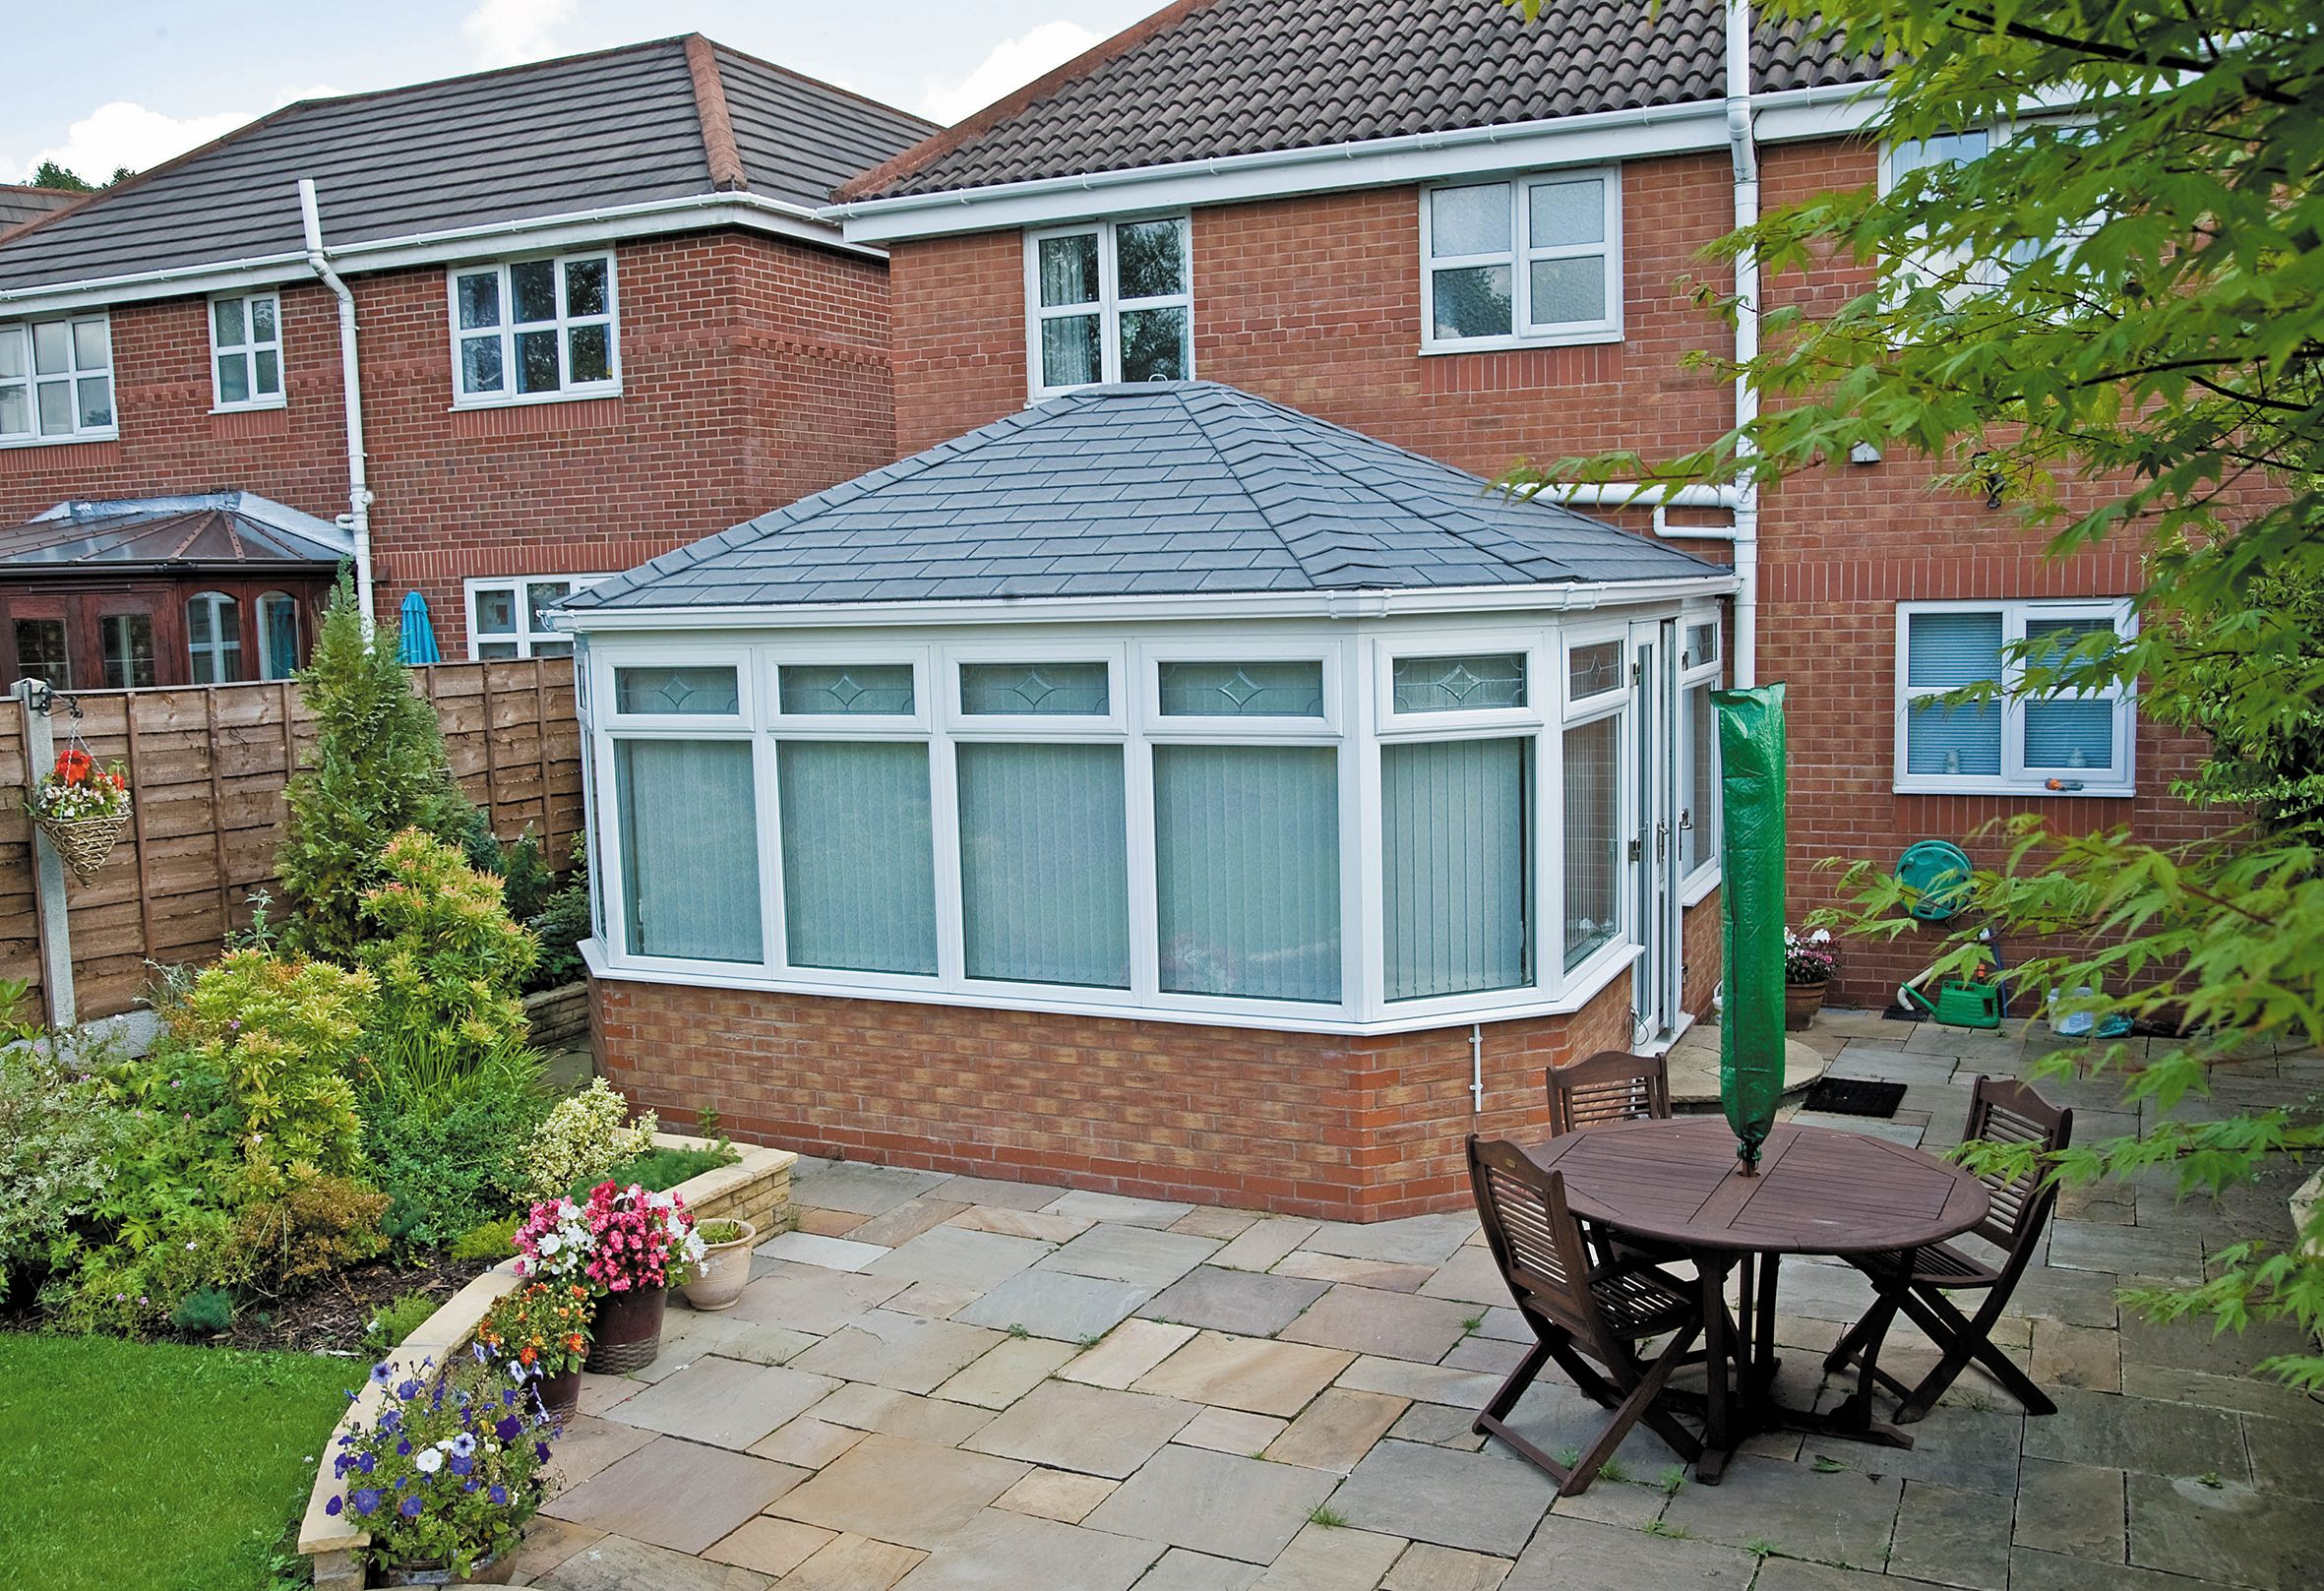 The Guardian Roof Looks Even Better When Contrasted To The Conservatory Next Door With An Inferior Polycarbonate Roof